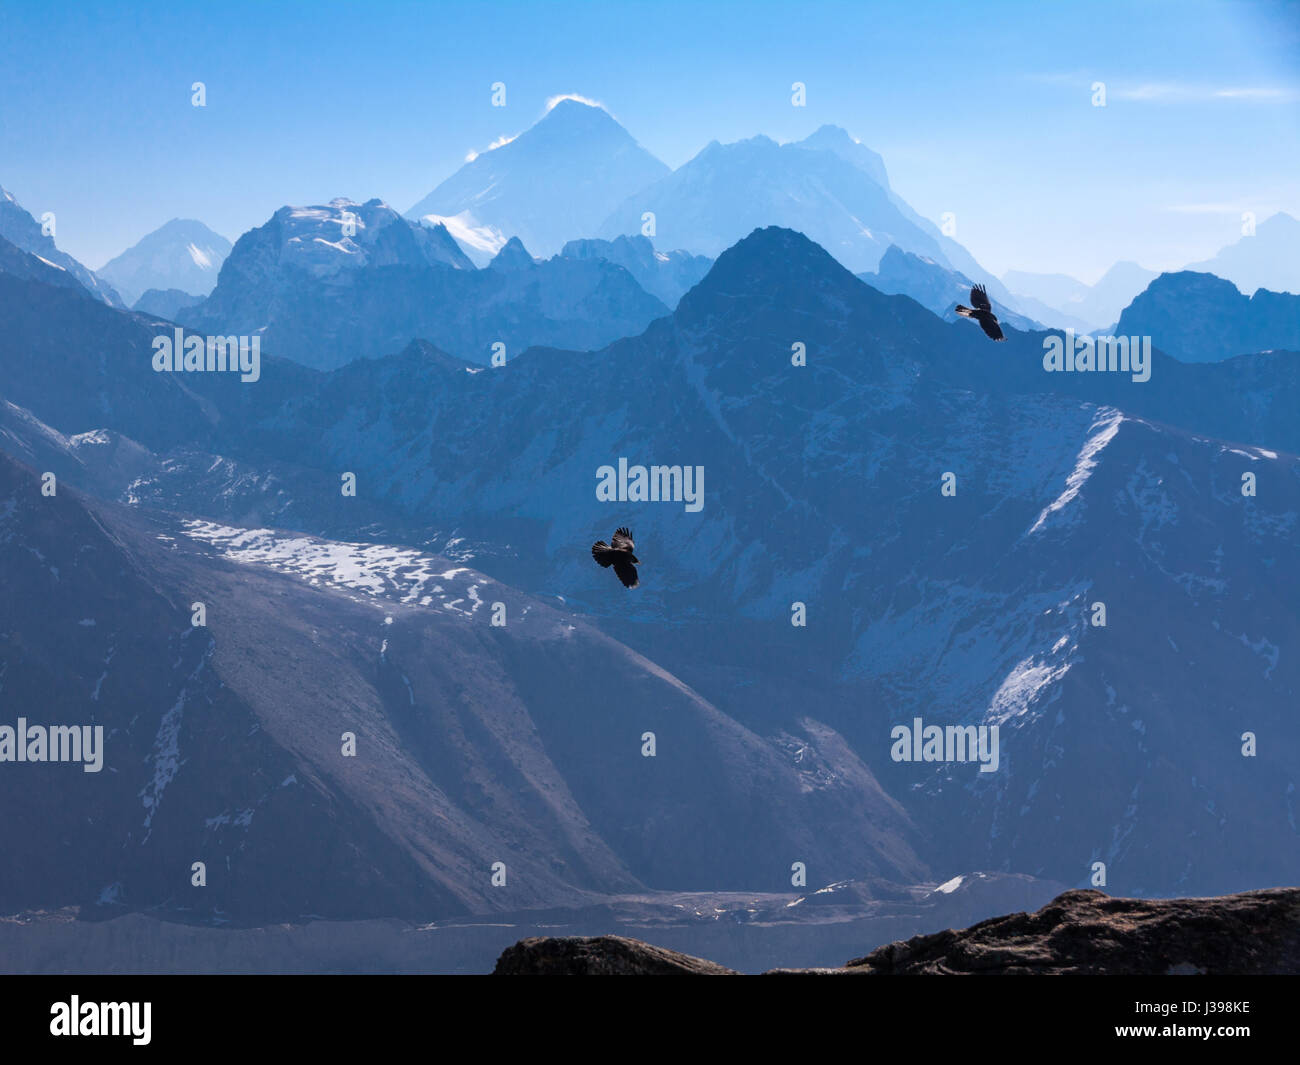 Two Ravens enjoy thermals near Gokyo Ri with Mount Everest back-lit on the horizon - Stock Image